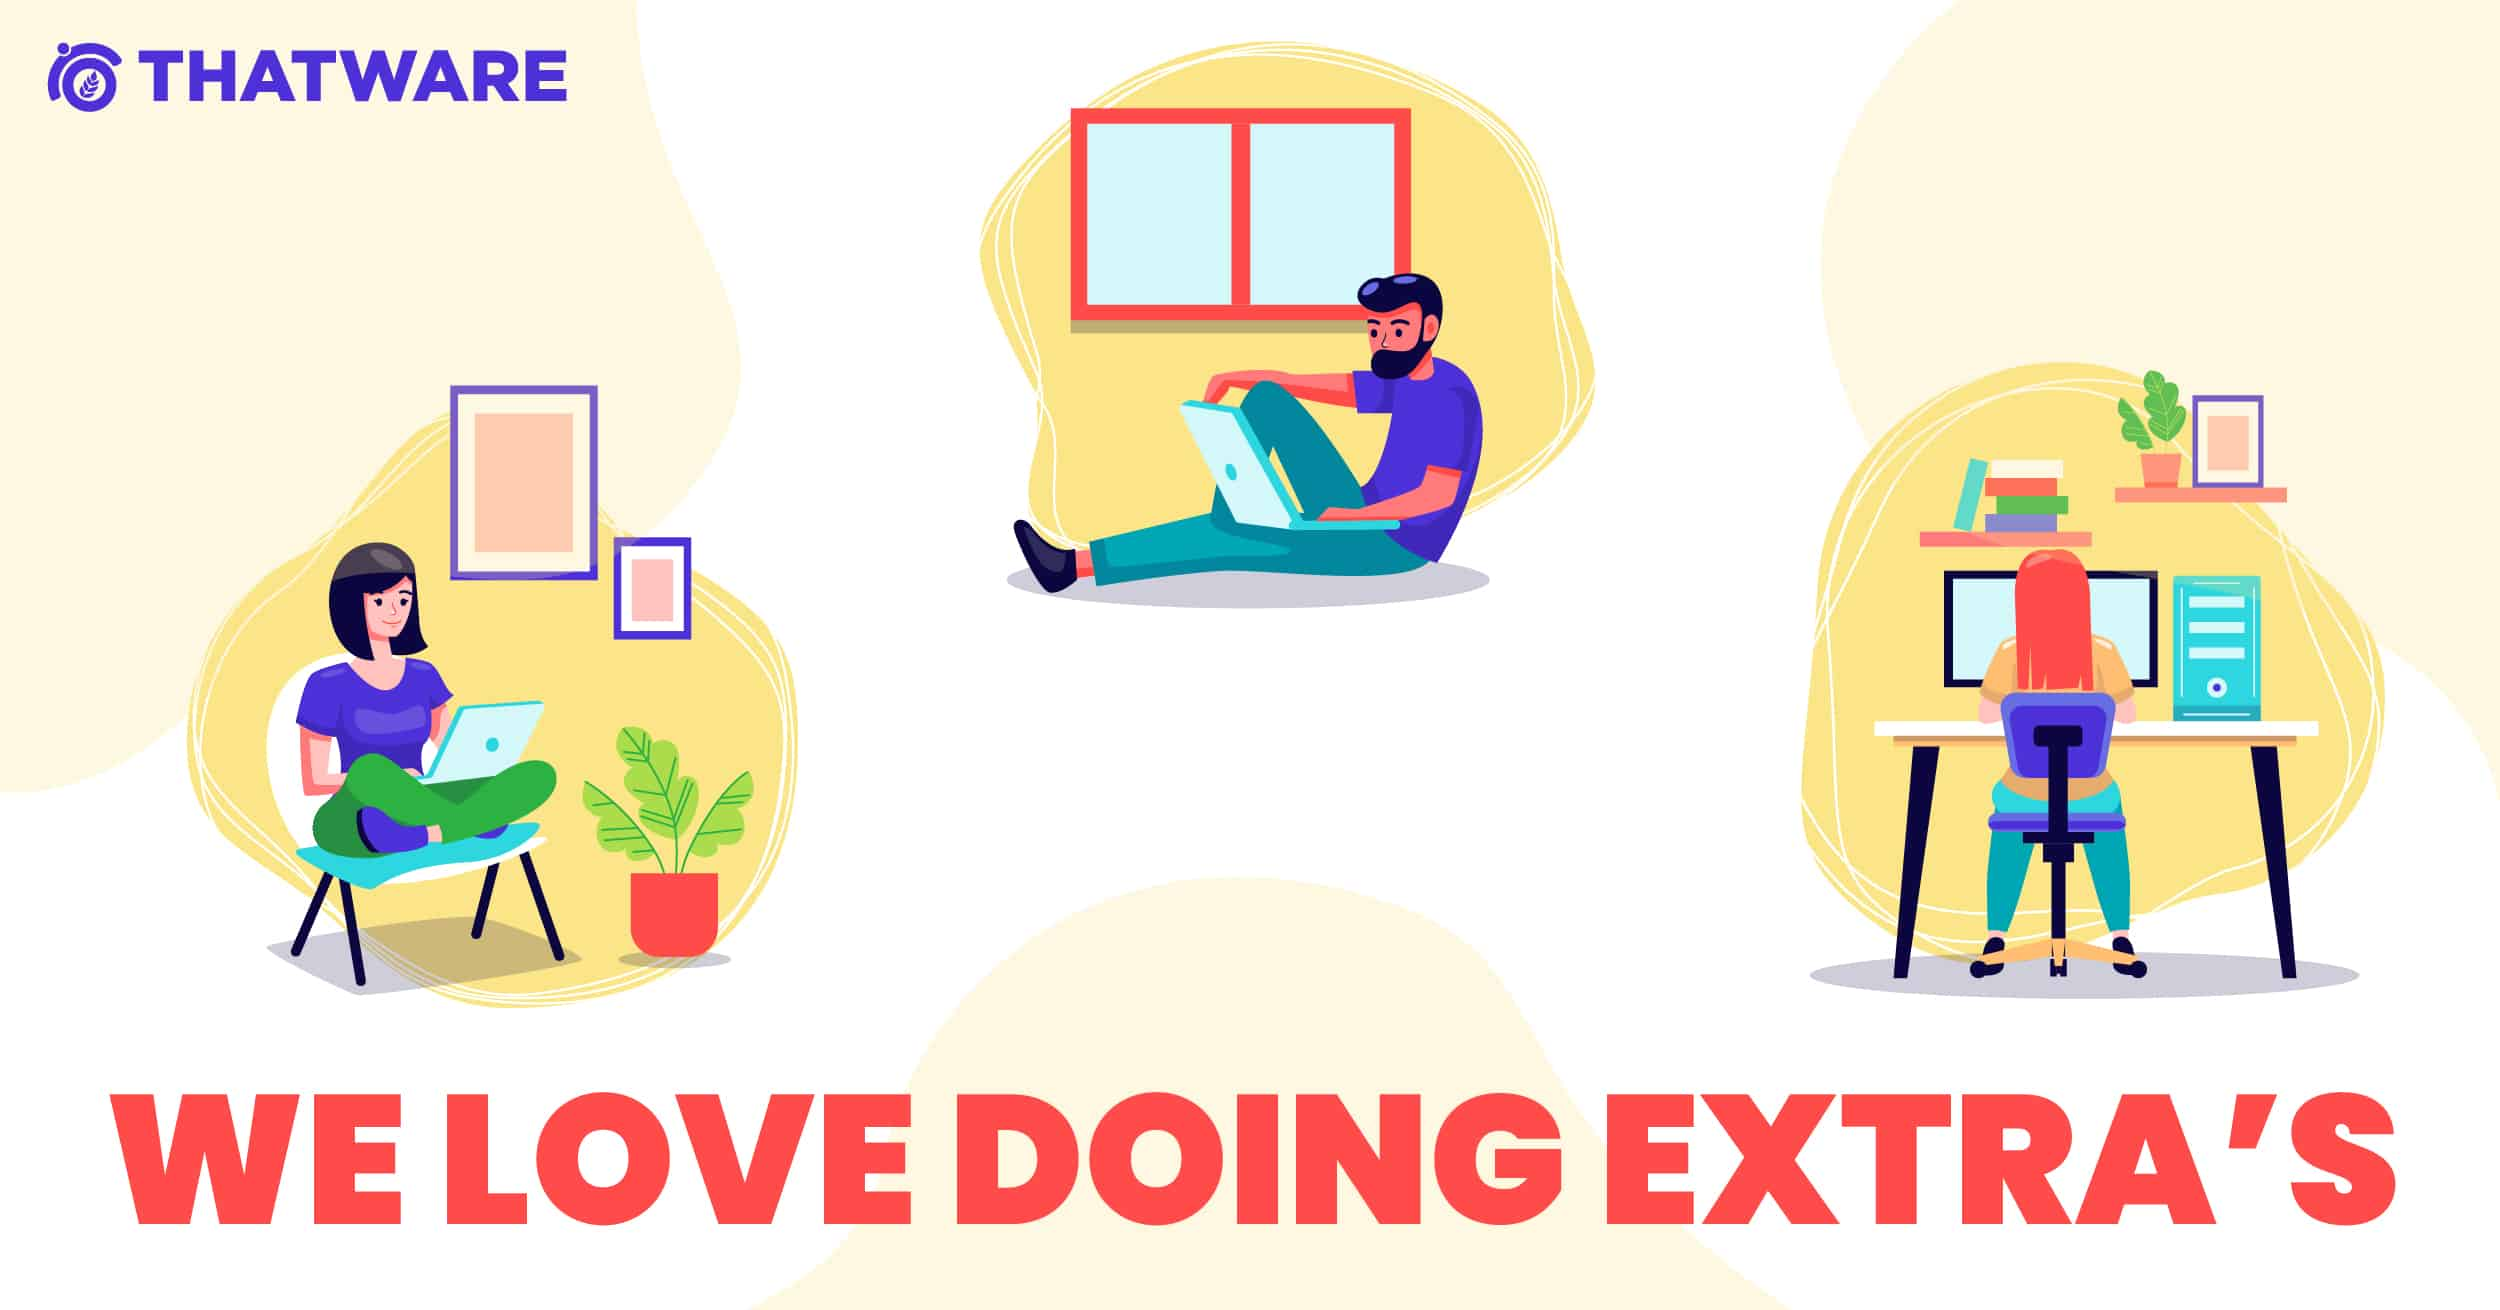 WE LOVE DOING EXTRA